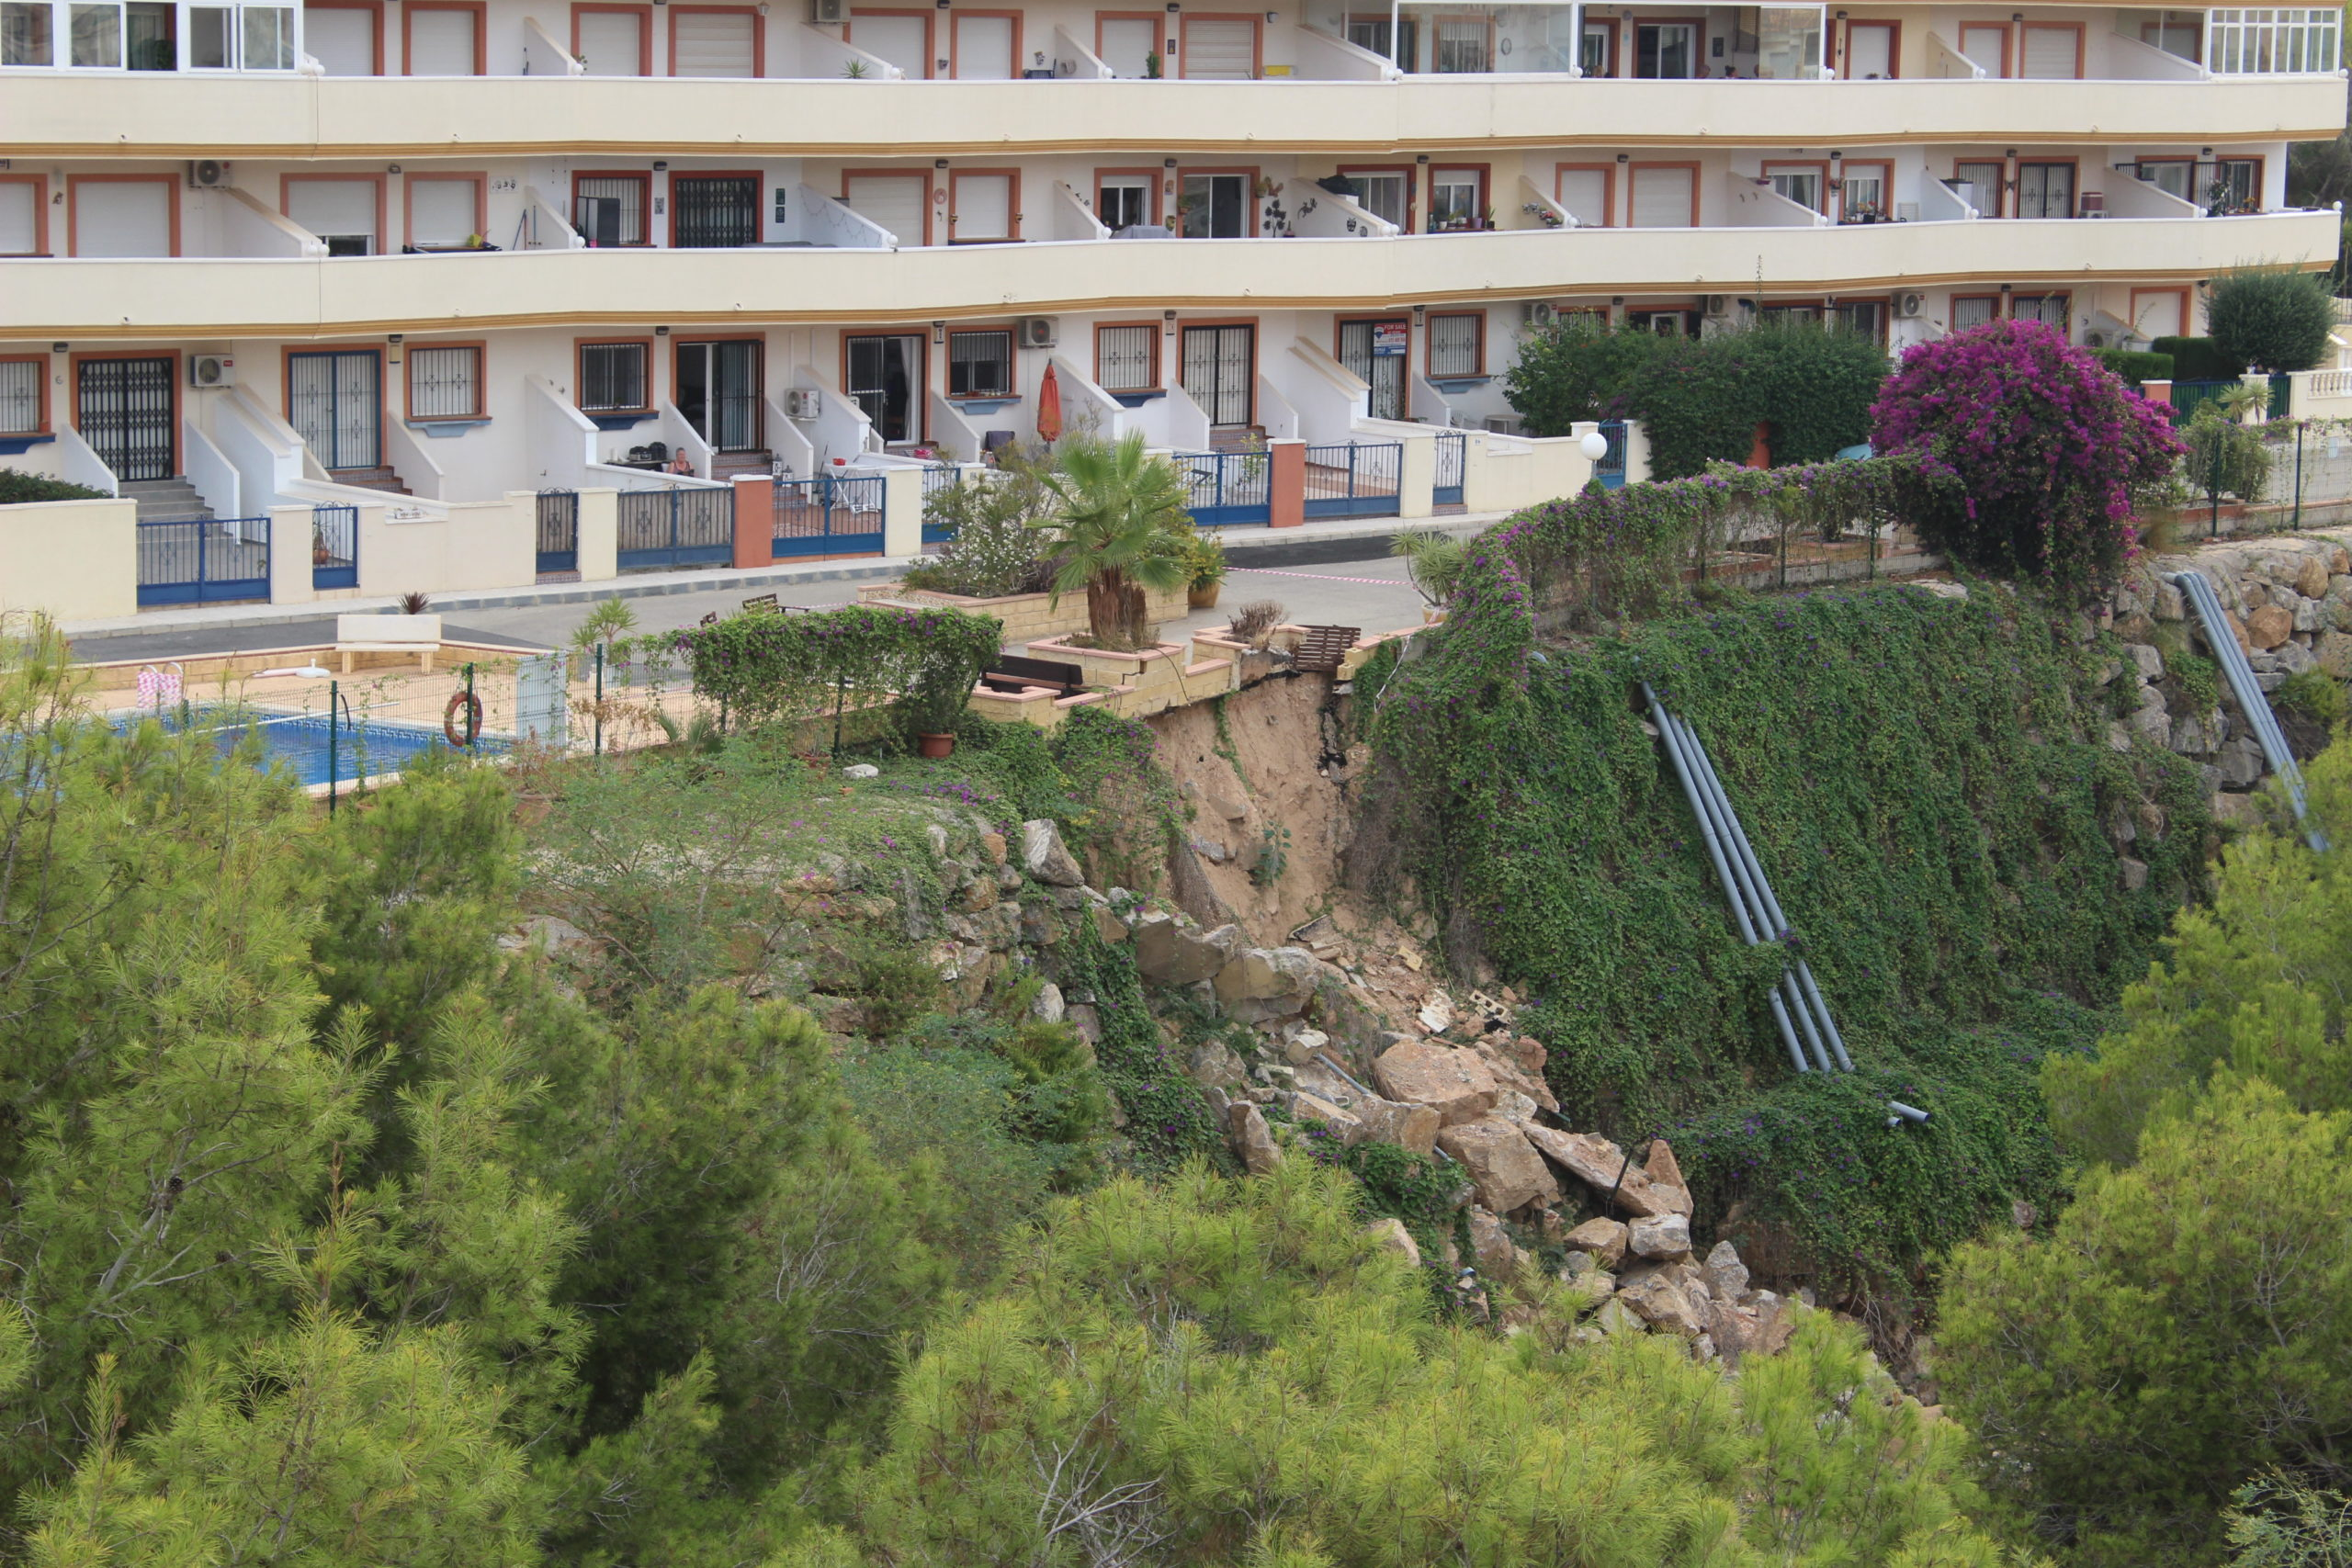 The situation across the Rambla in the Apts Jardin d'Alba is equally precarious